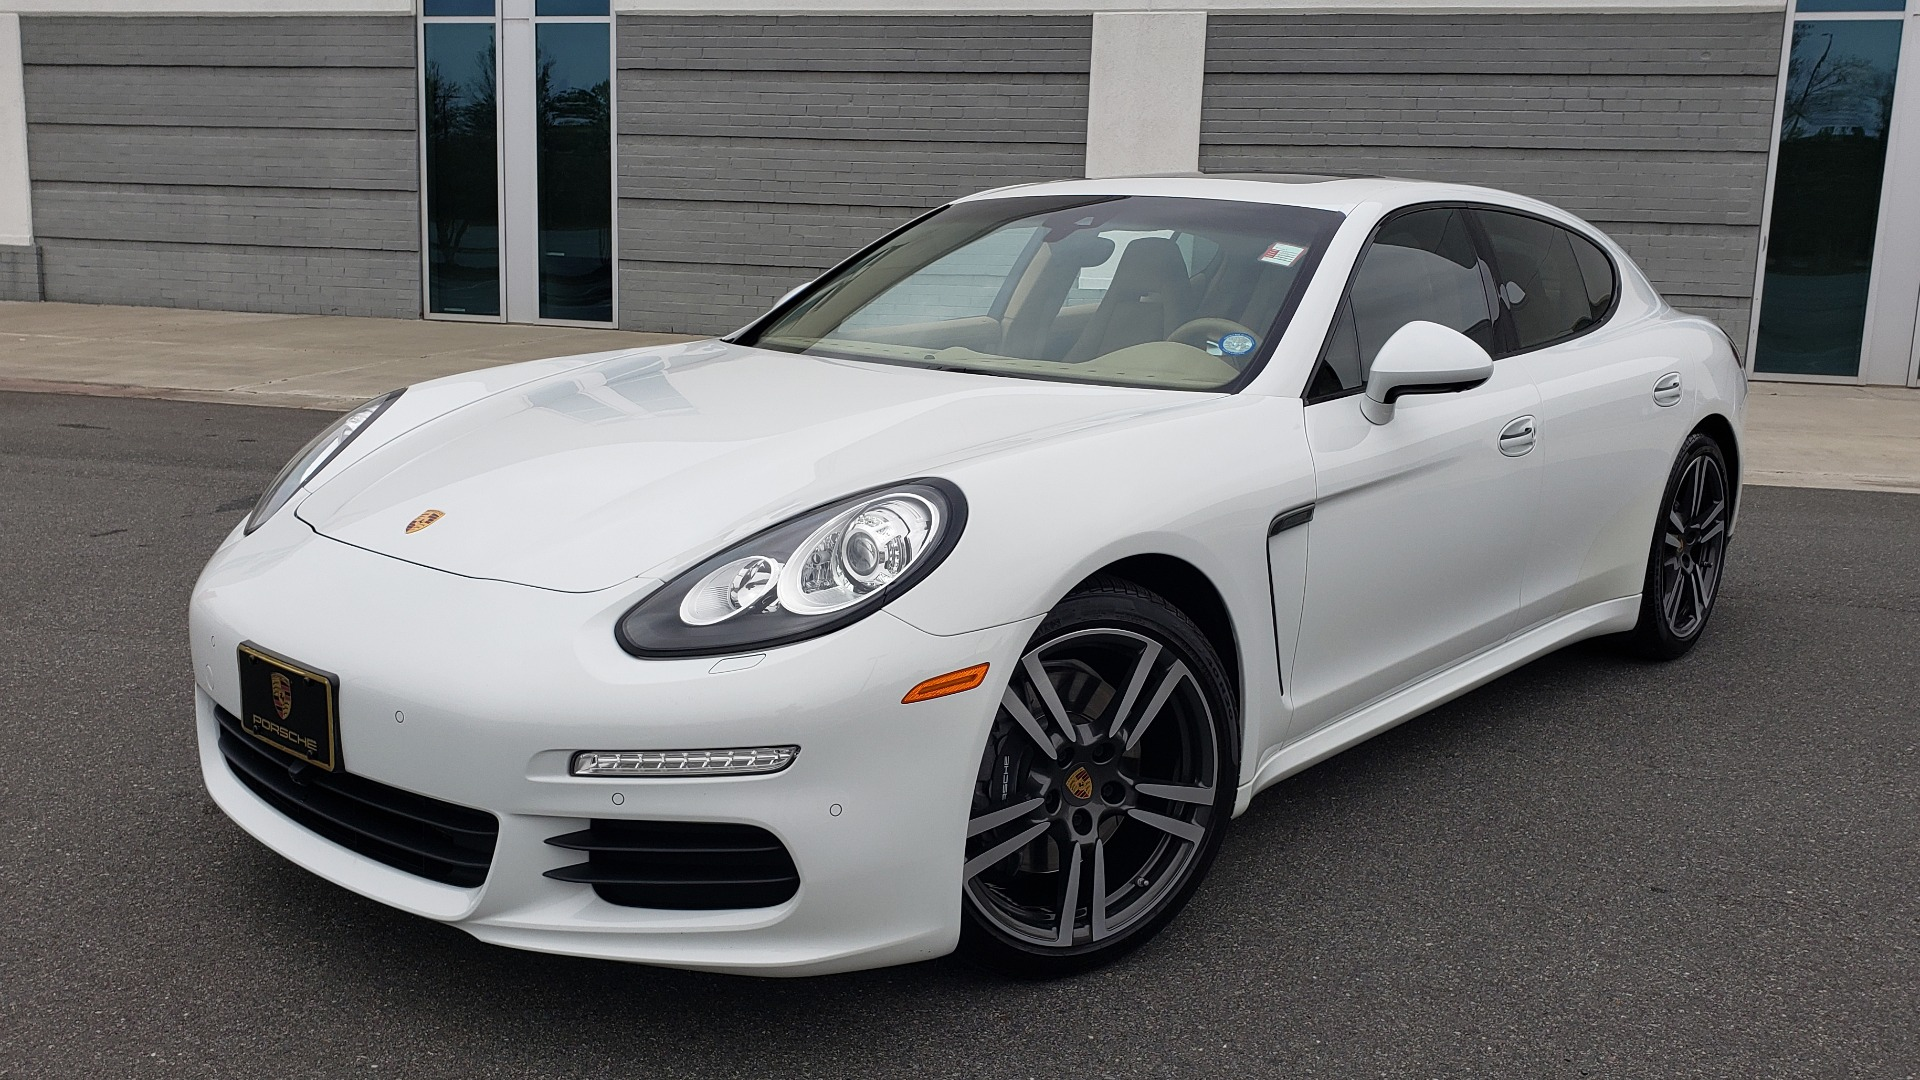 Used 2016 Porsche PANAMERA EDITION / 3.6L V6 / PDK TANS / PREMIUM PKG / LDW / PARK ASSIST for sale Sold at Formula Imports in Charlotte NC 28227 1